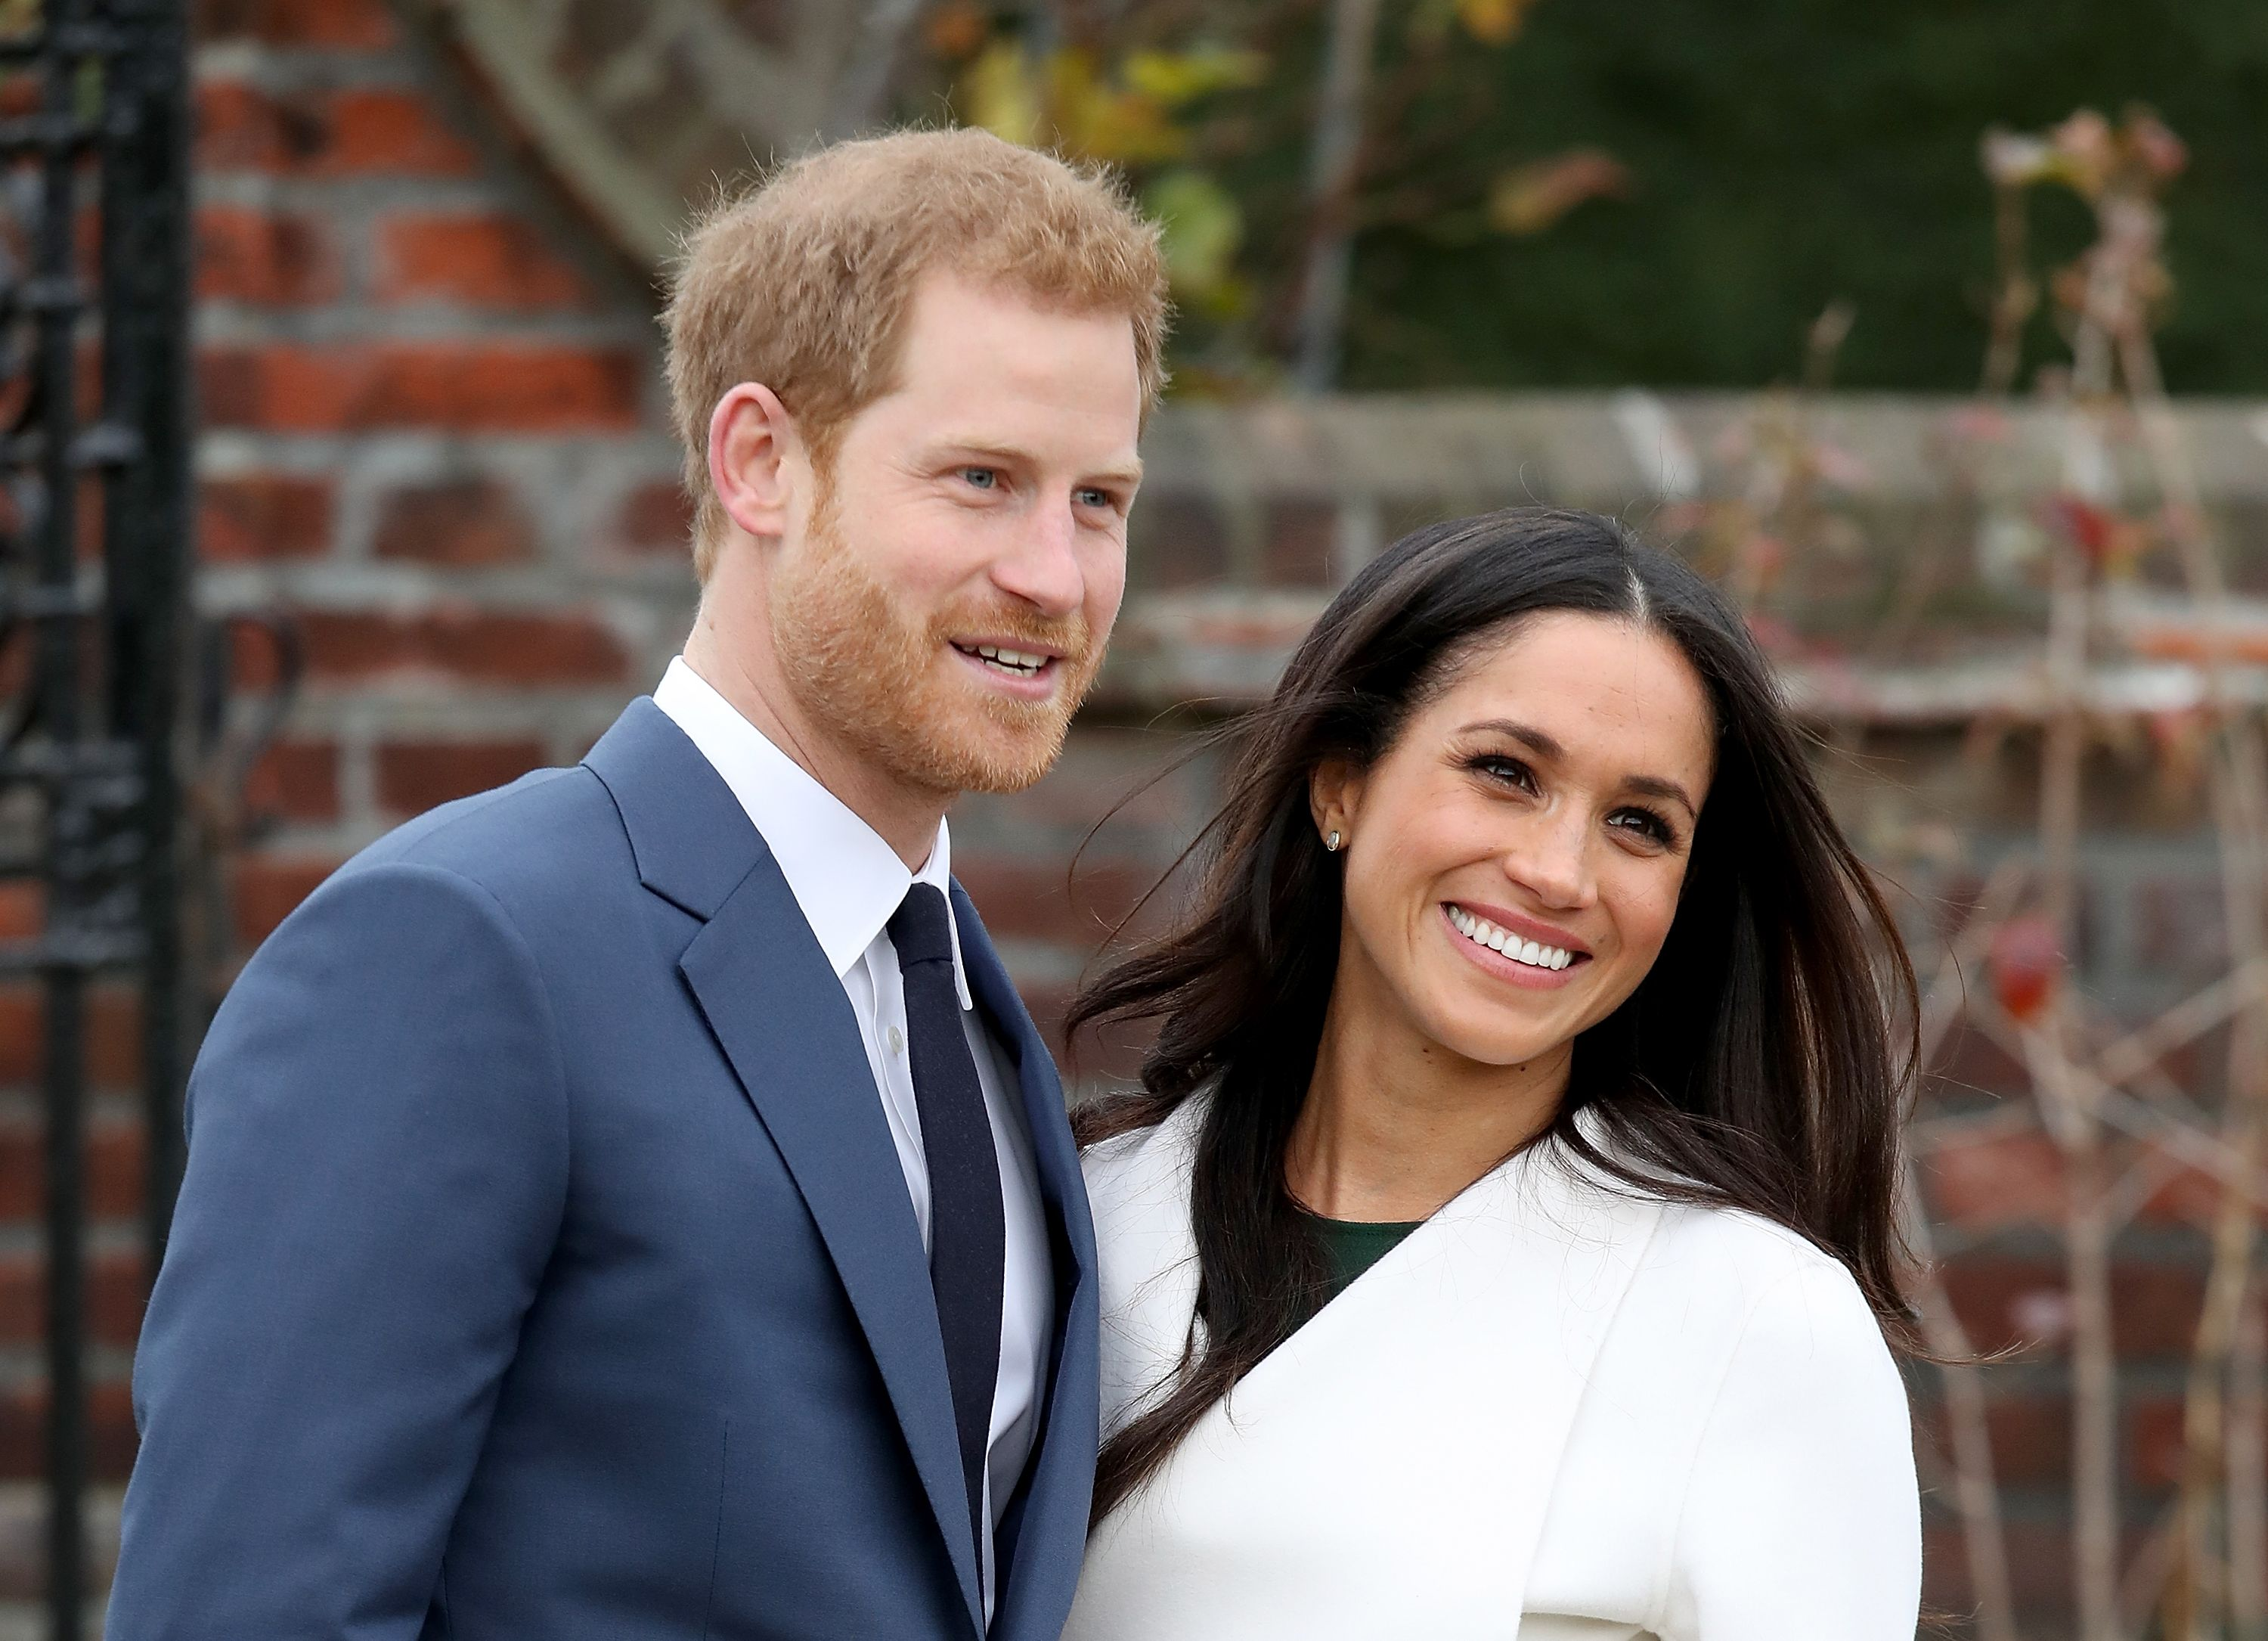 Prince Harry and actress Meghan Markle at an official photocall to announce their engagement at The Sunken Gardens at Kensington Palace on November 27, 2017.   Photo: Getty Images